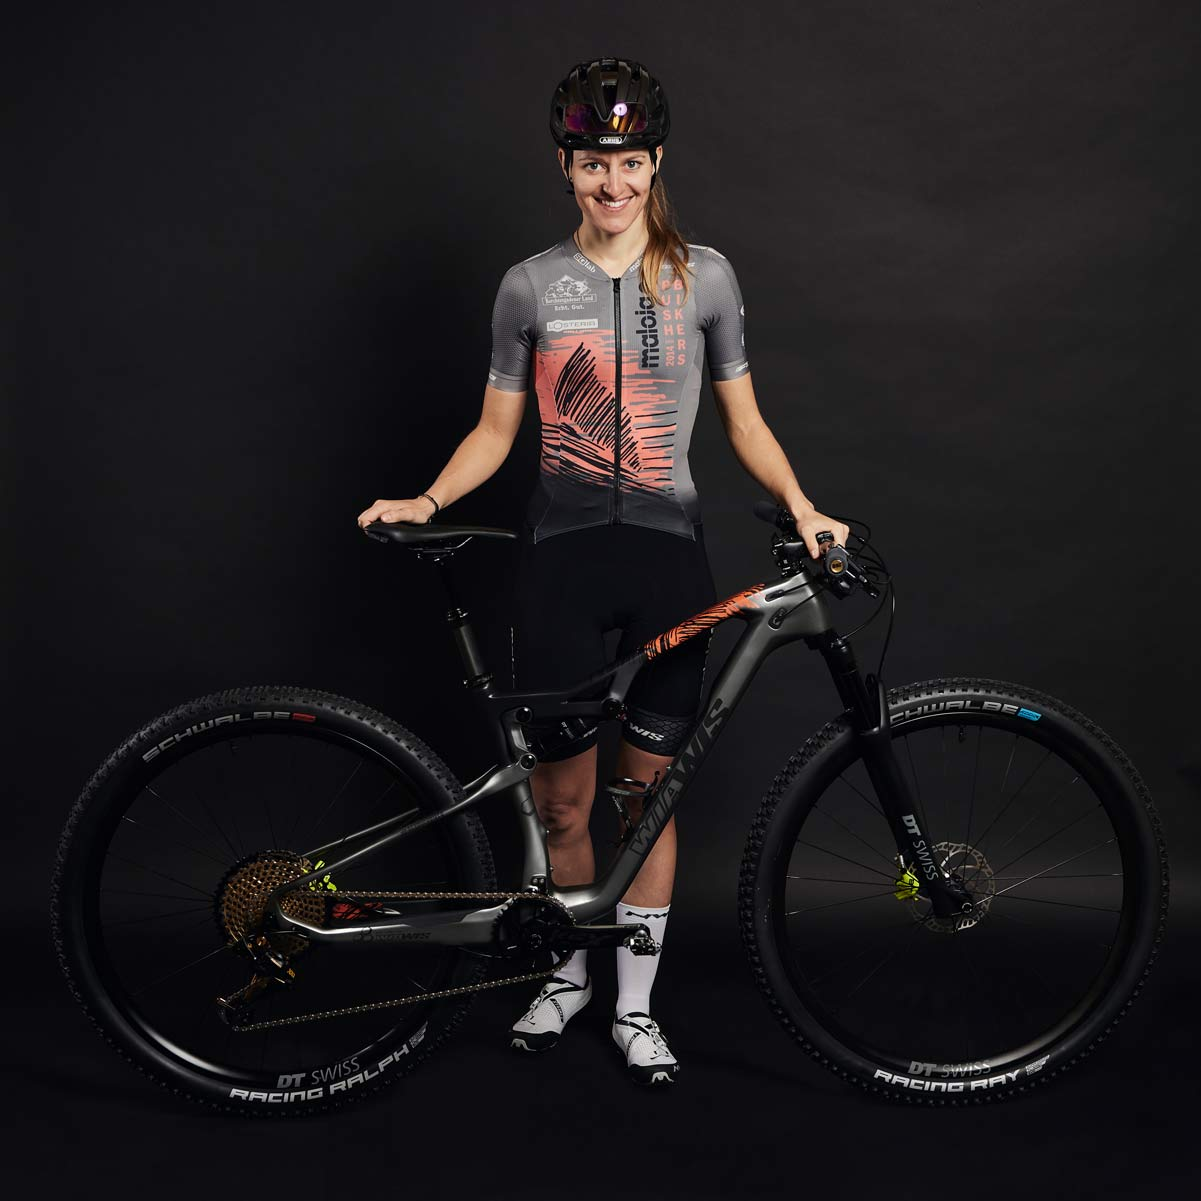 The Maloja Pushbikers are now also on the road with professional team in the mountain bike world cup